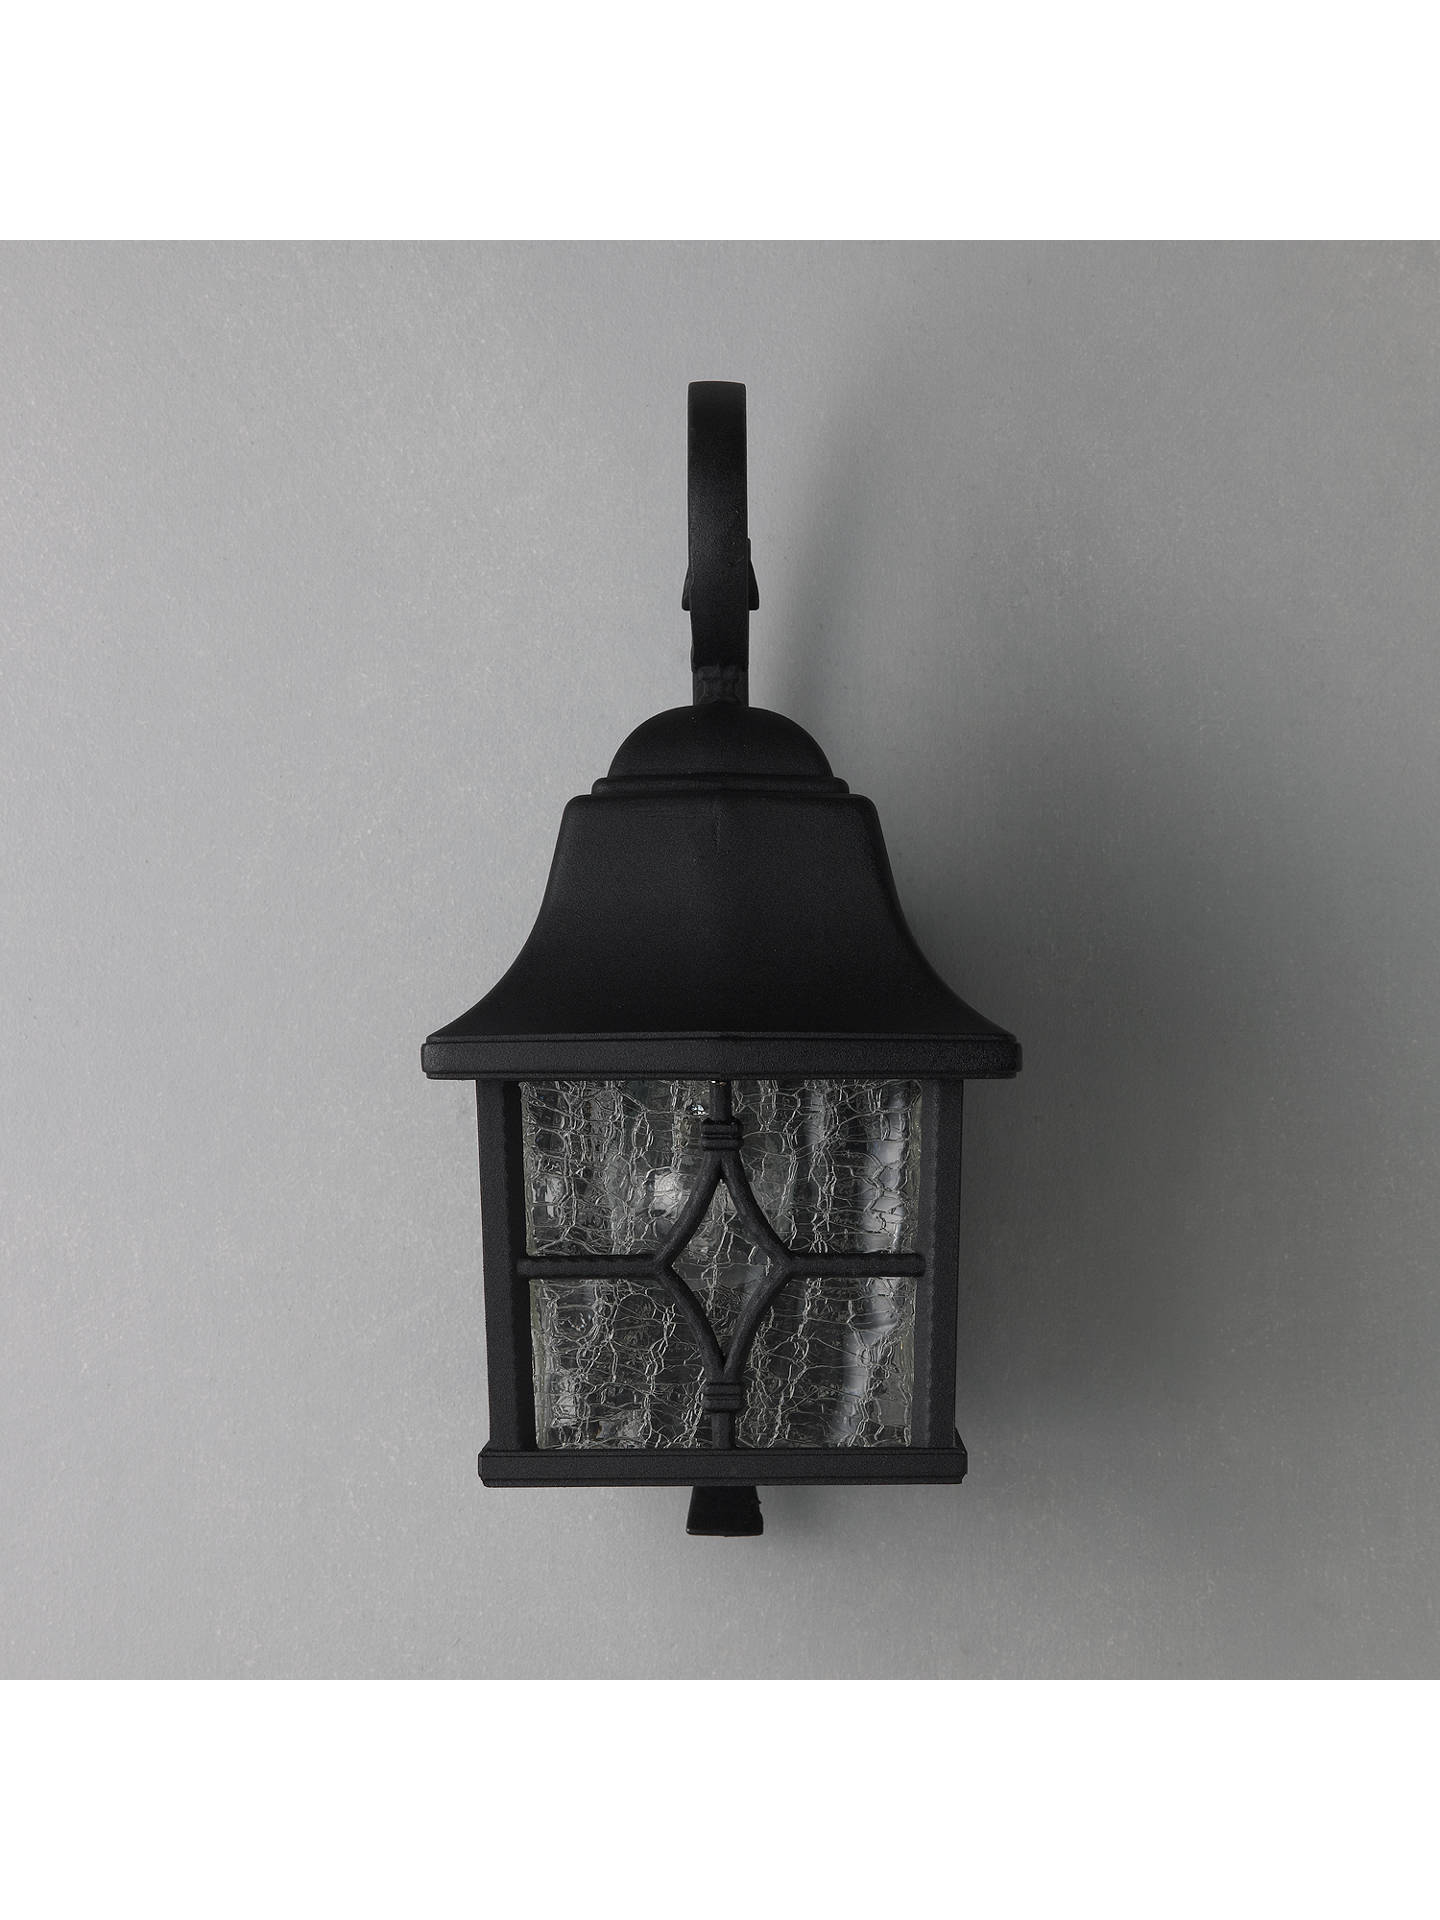 BuyJohn Lewis & Partners Sutton Wall Light Online at johnlewis.com